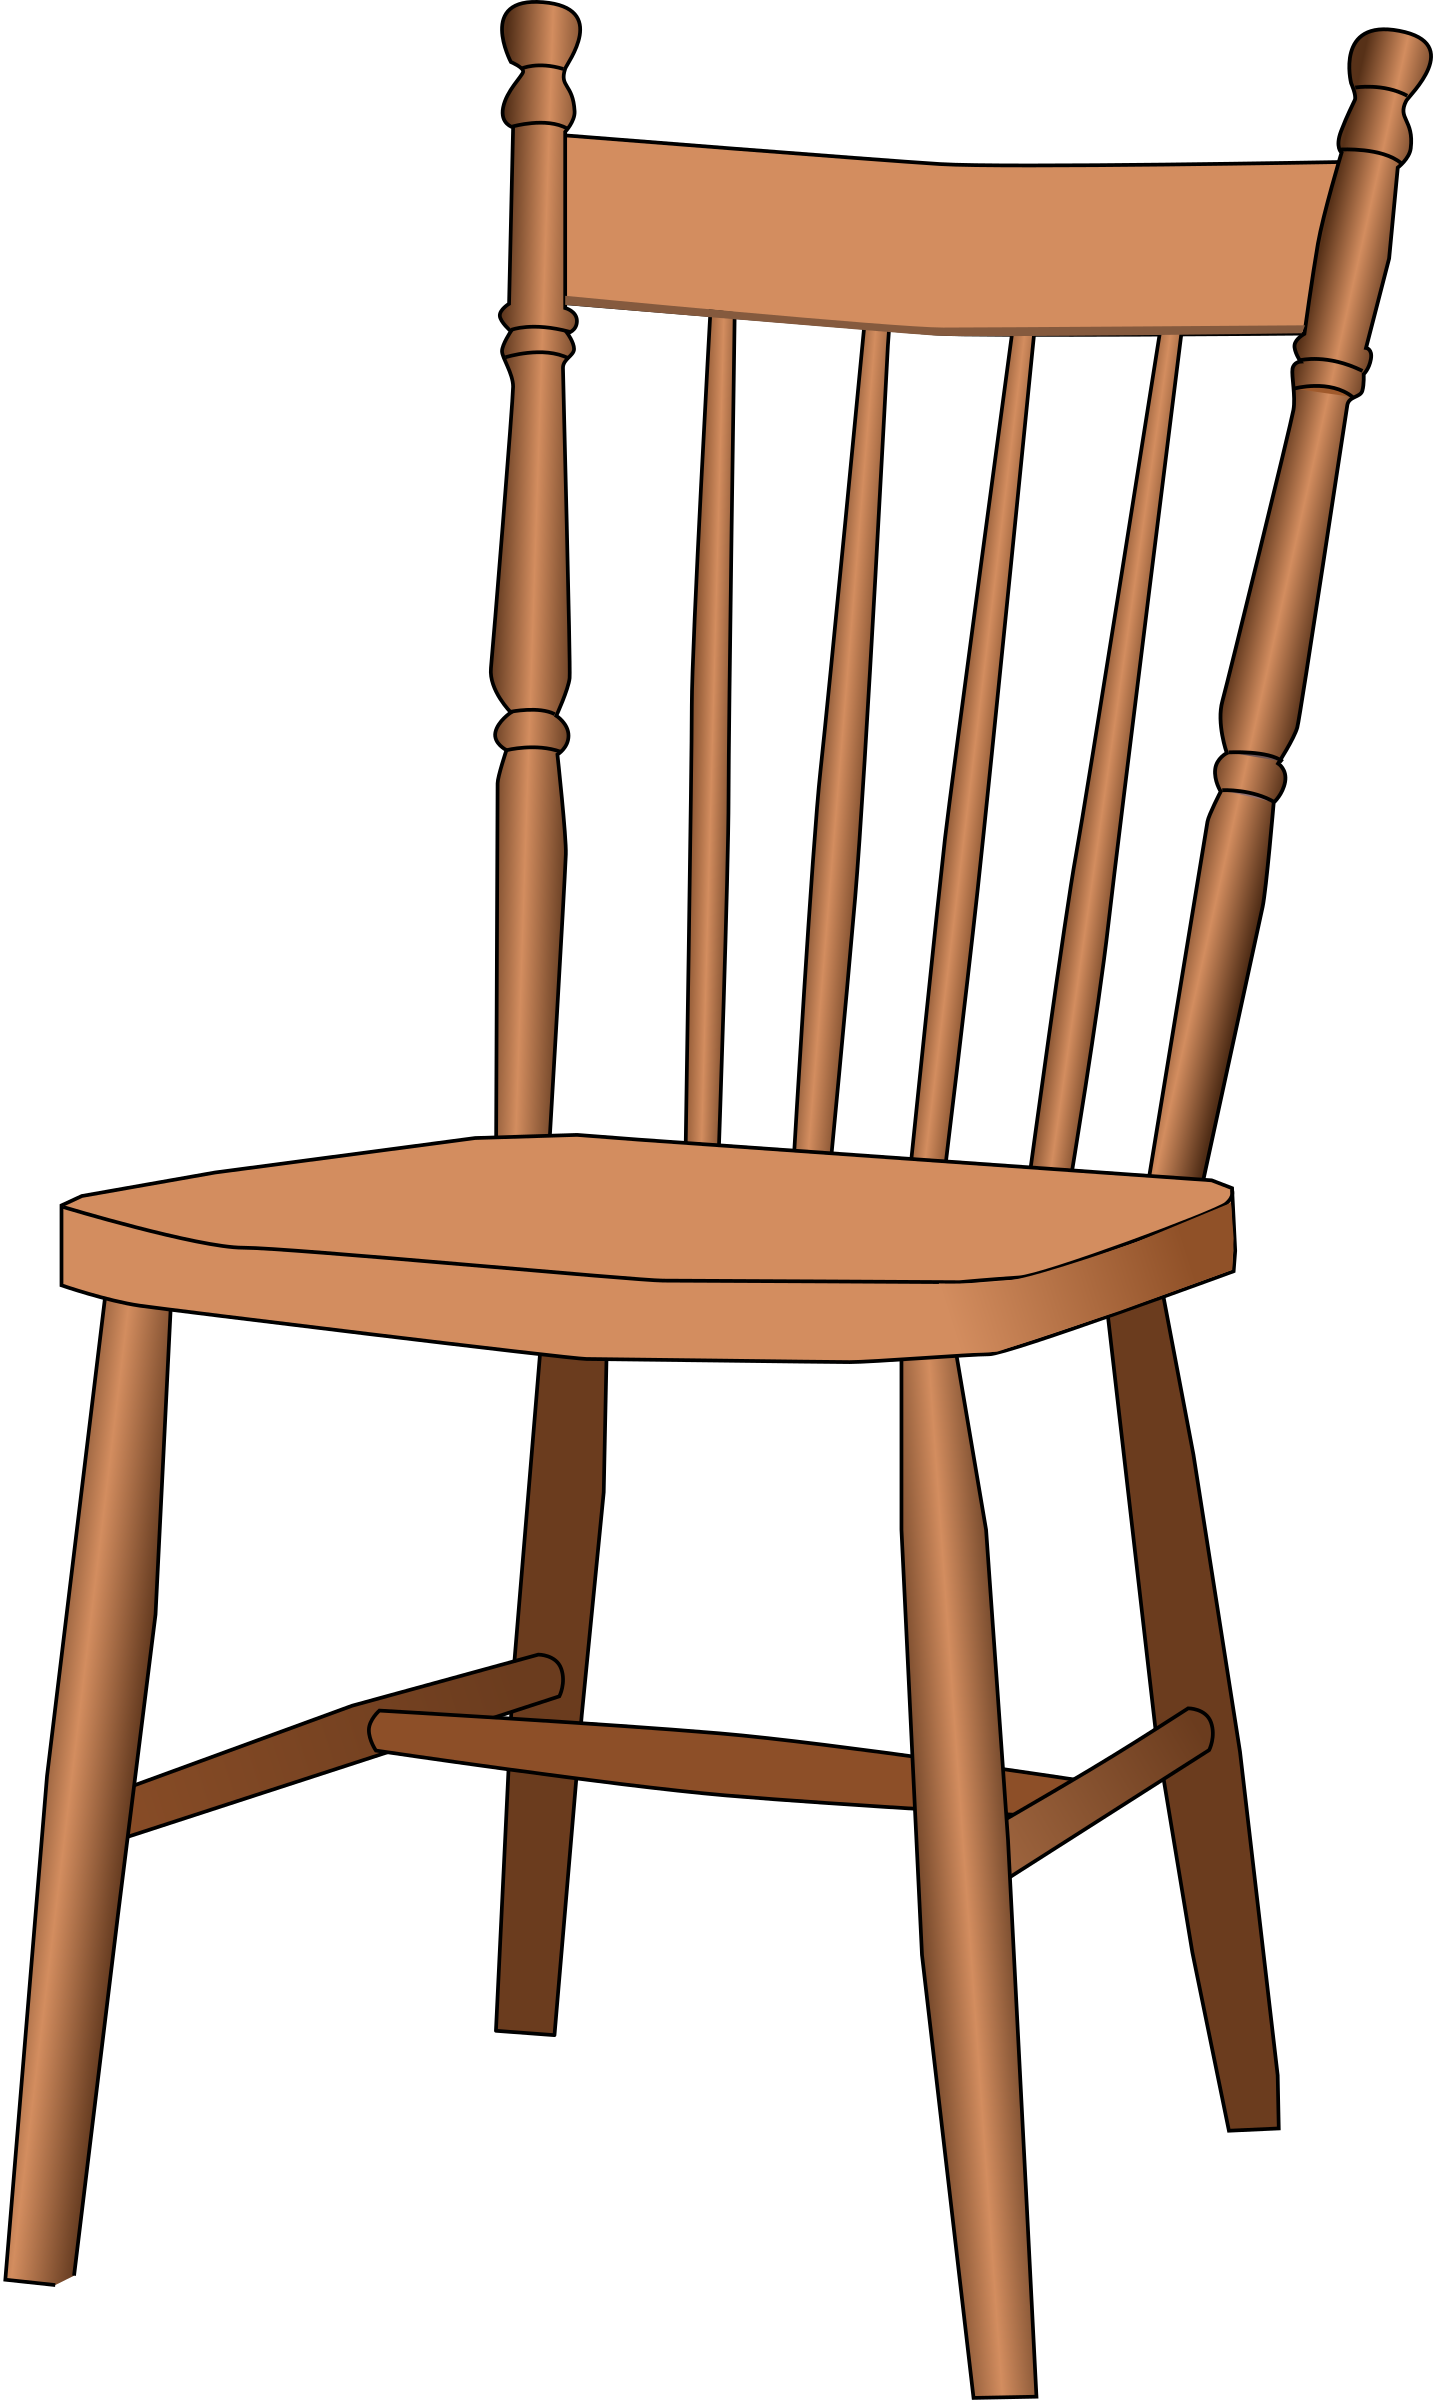 Table and chairs clipart free download best